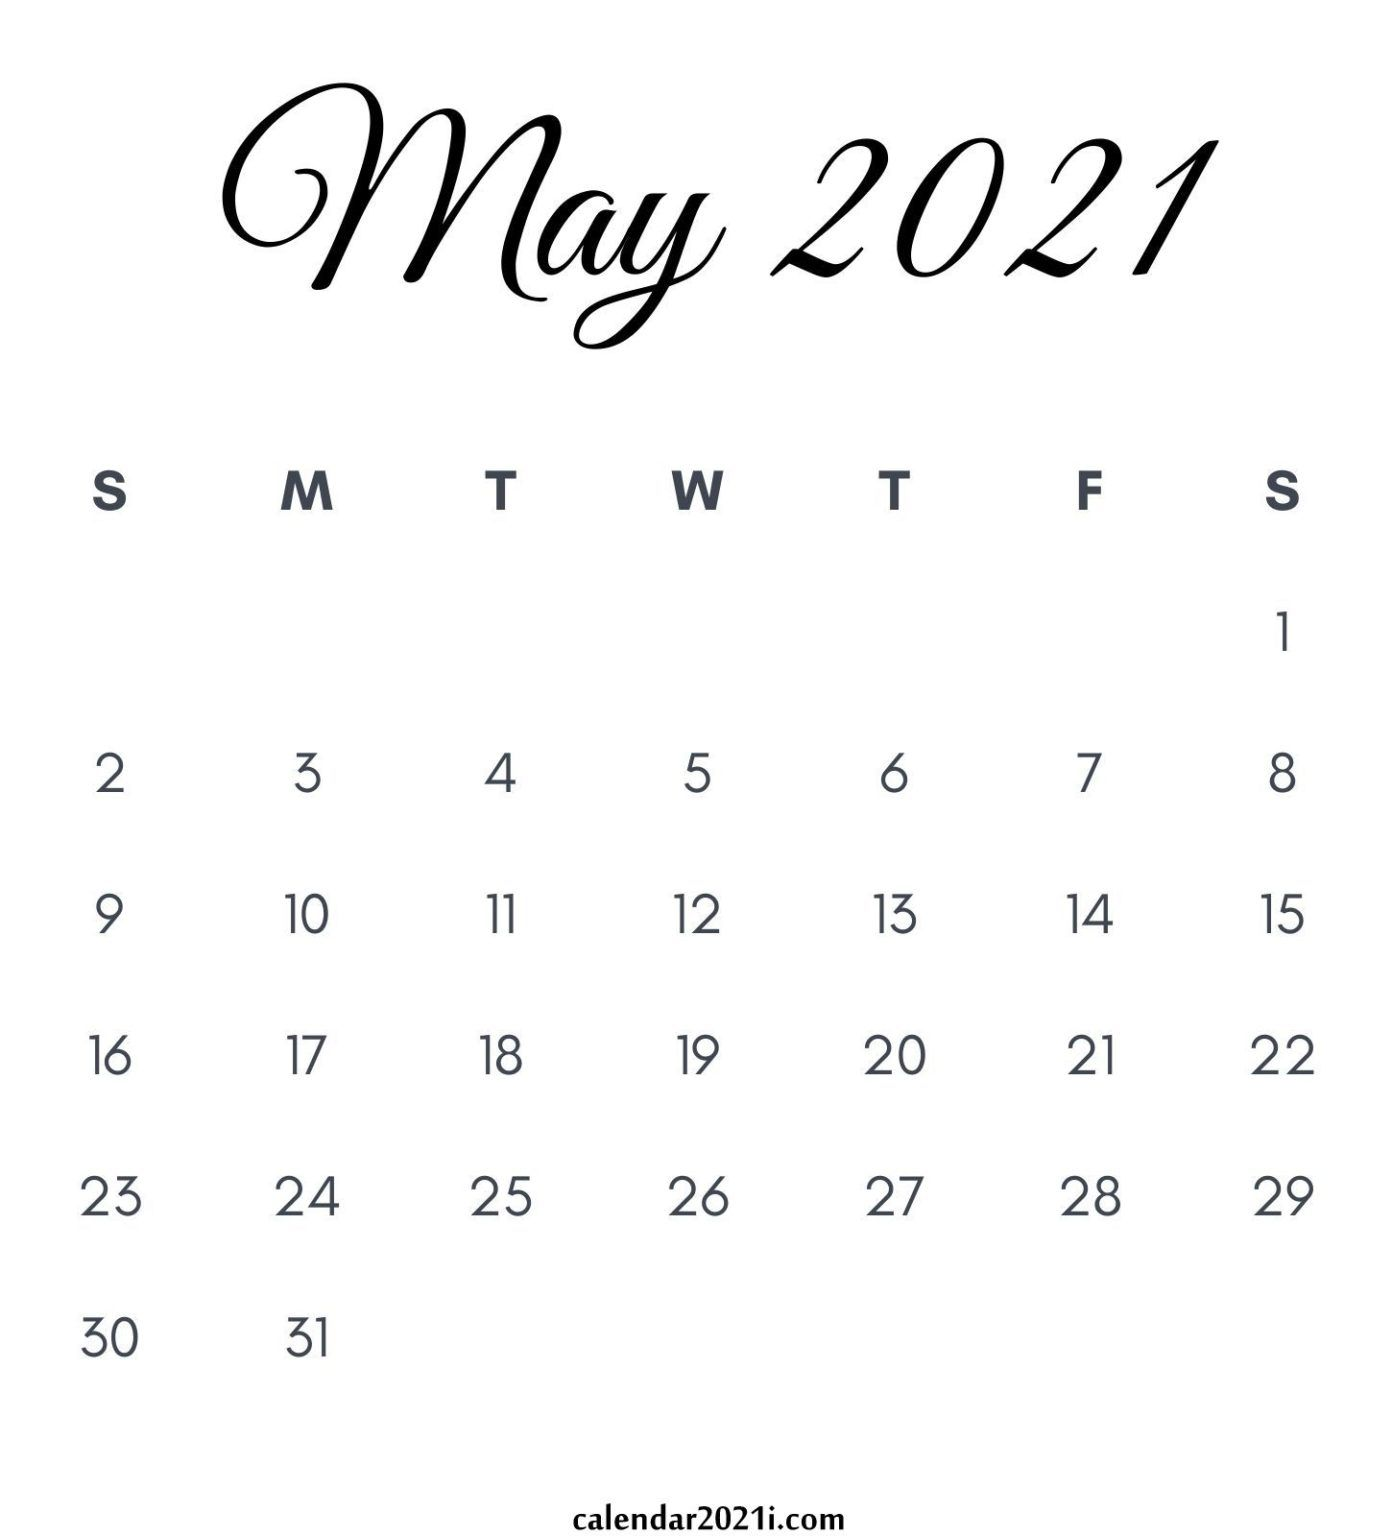 May 2021 Calendar Printable In 2020 2021 Calendar Calendar Printables Printable Calendar July